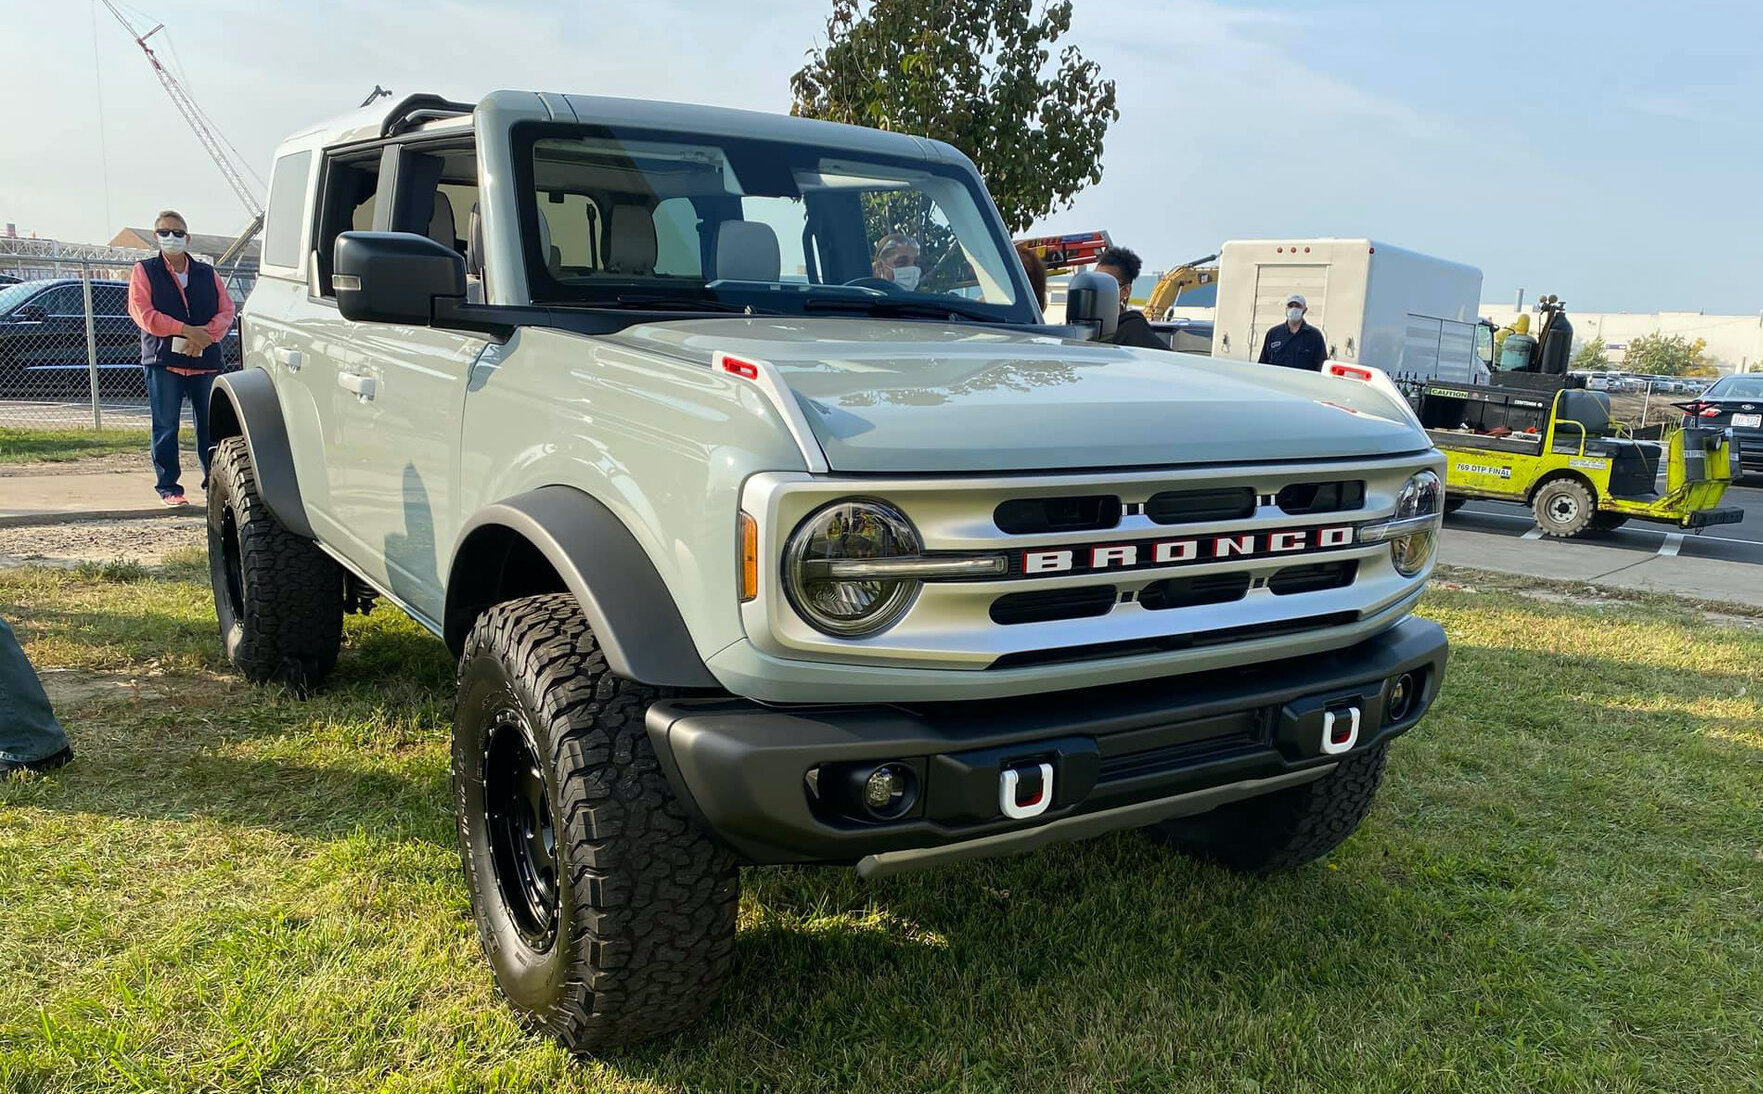 cactus-gray-4-door-bronco-launch-vehicle-1.jpg